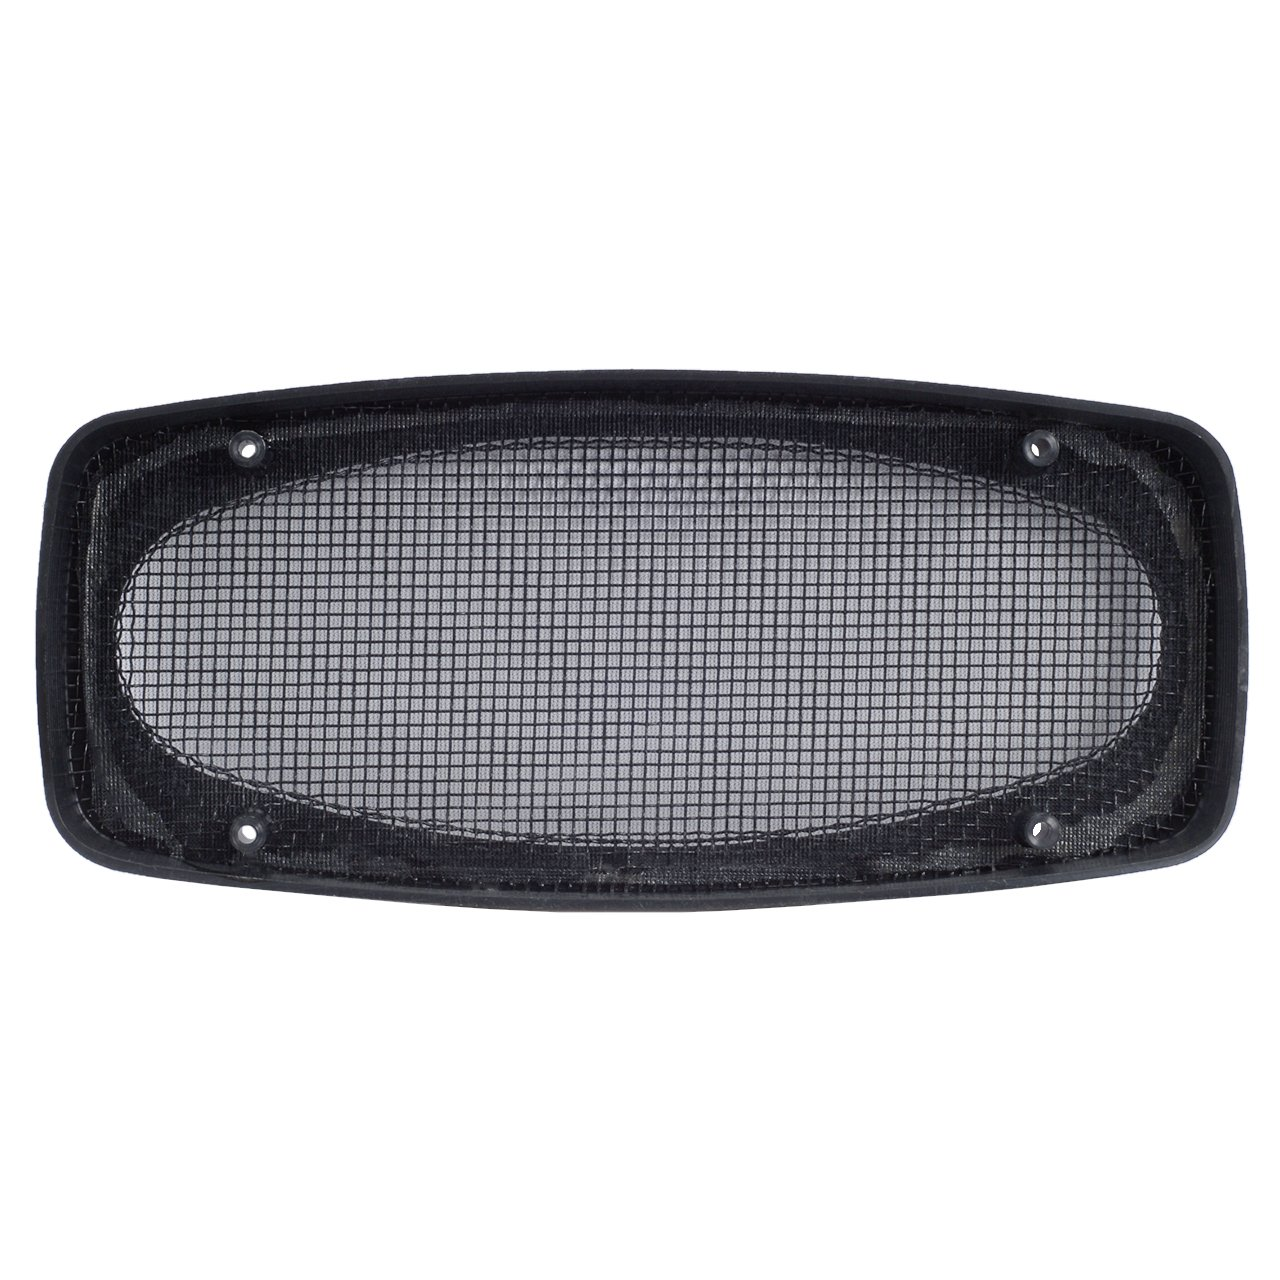 Magnadyne 4 x 10 Universal Grill with Black Wire Mesh